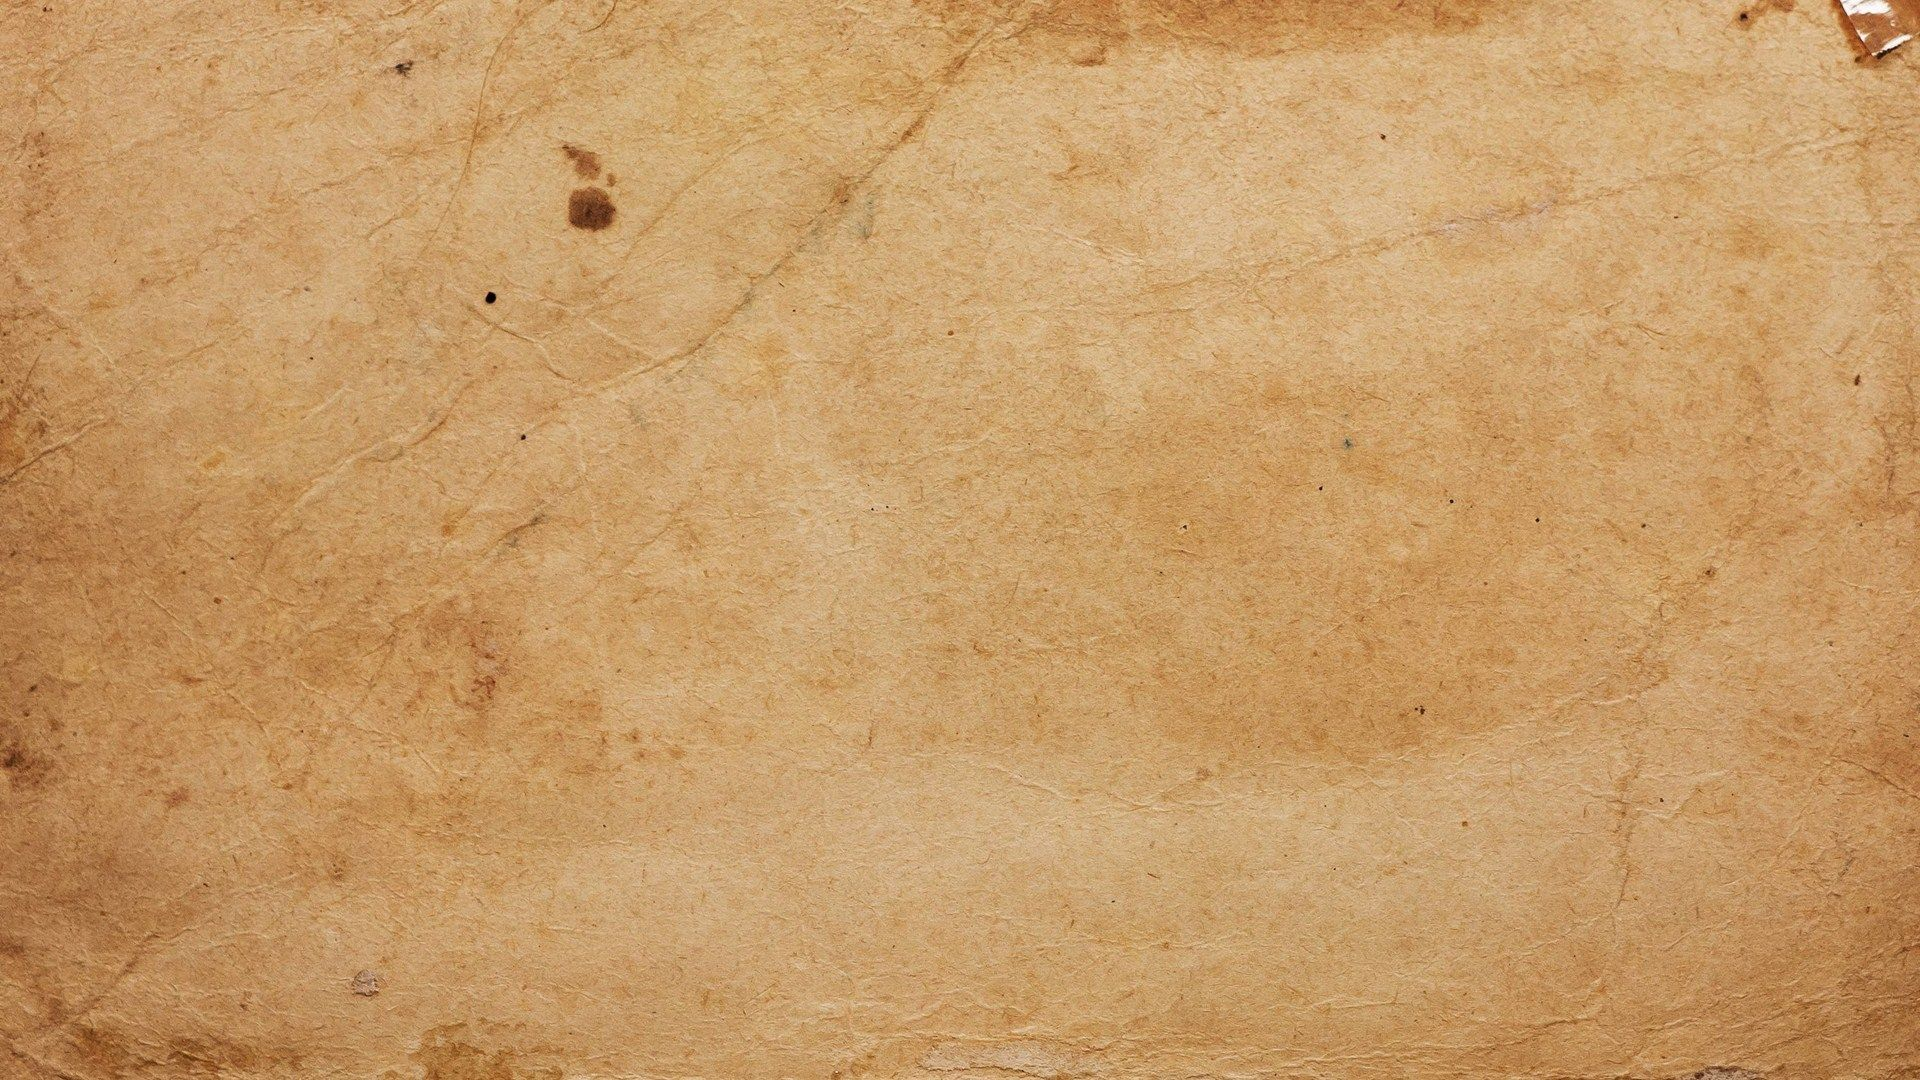 Paper Texture Wallpapers - Top Free Paper Texture Backgrounds ...